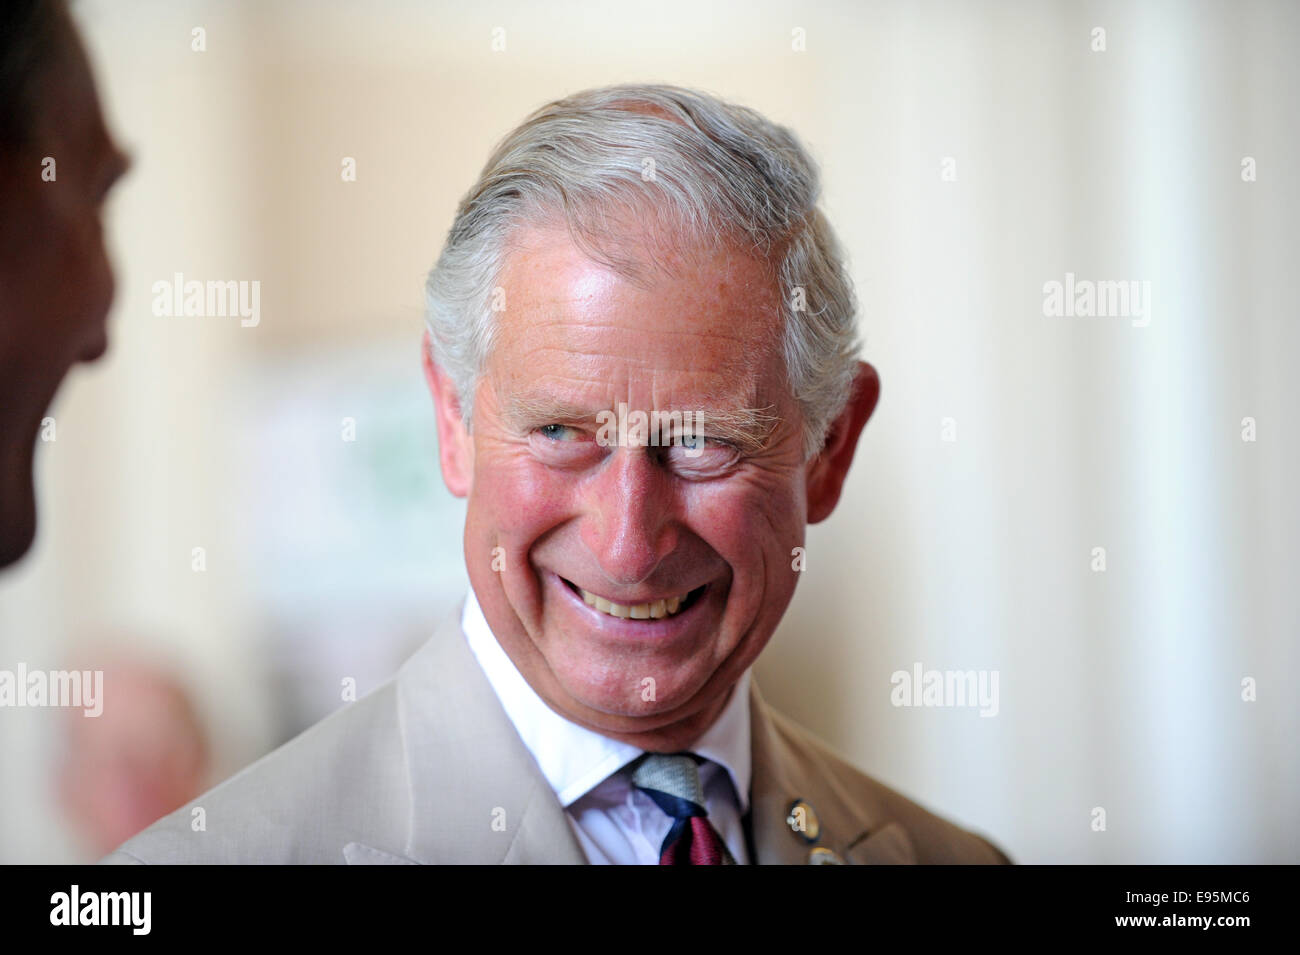 A relaxed and smiling Prince Charles during a public engagement in Sussex - Stock Image